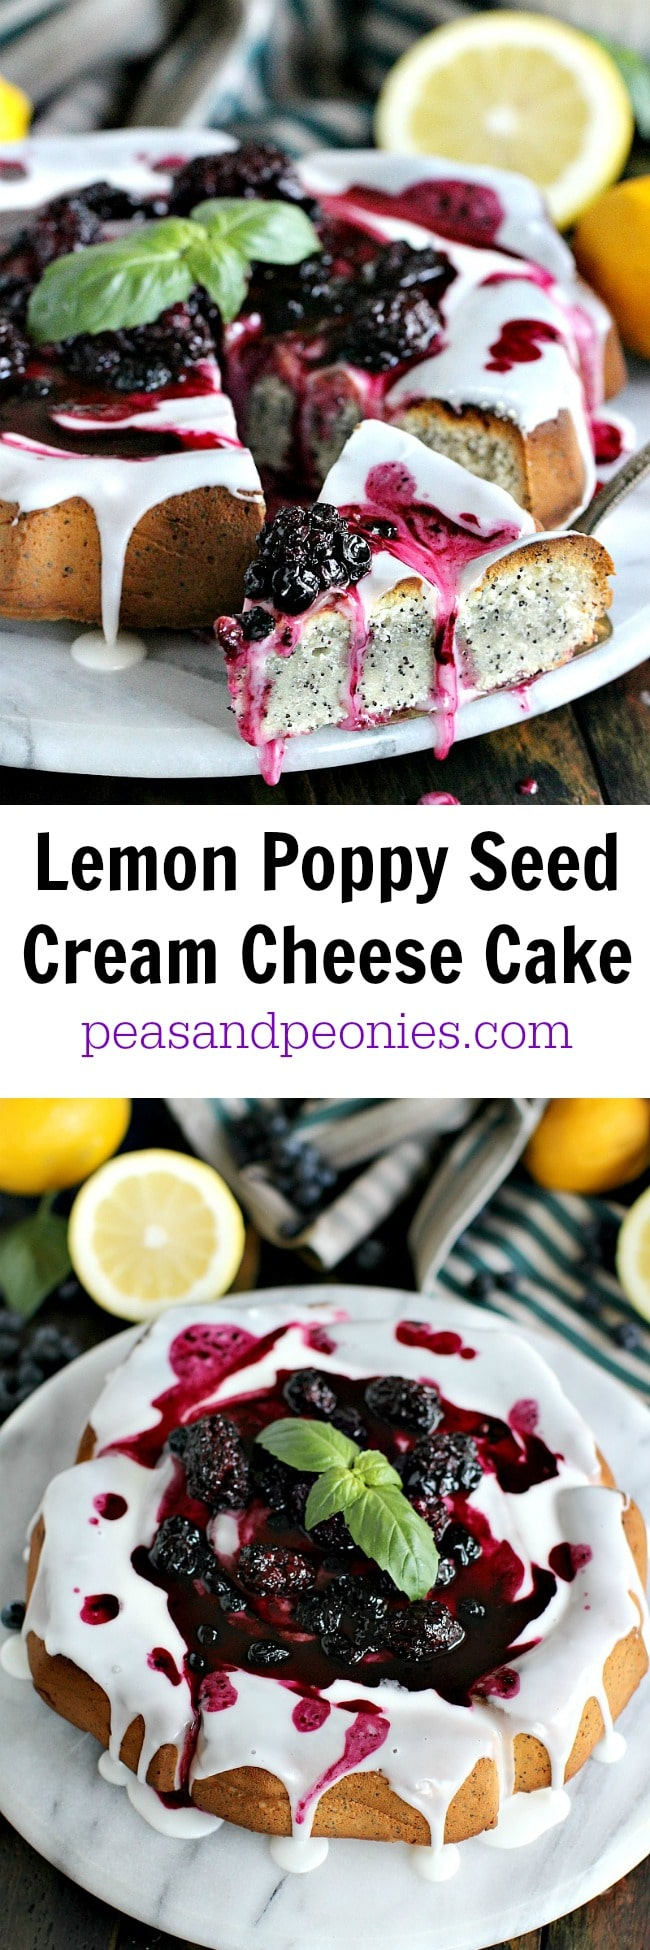 Cream Cheese Lemon Poppy Seed Cake is very easy to male, topped with lemon glaze, brown sugar roasted berries and a few fresh basil leaves.